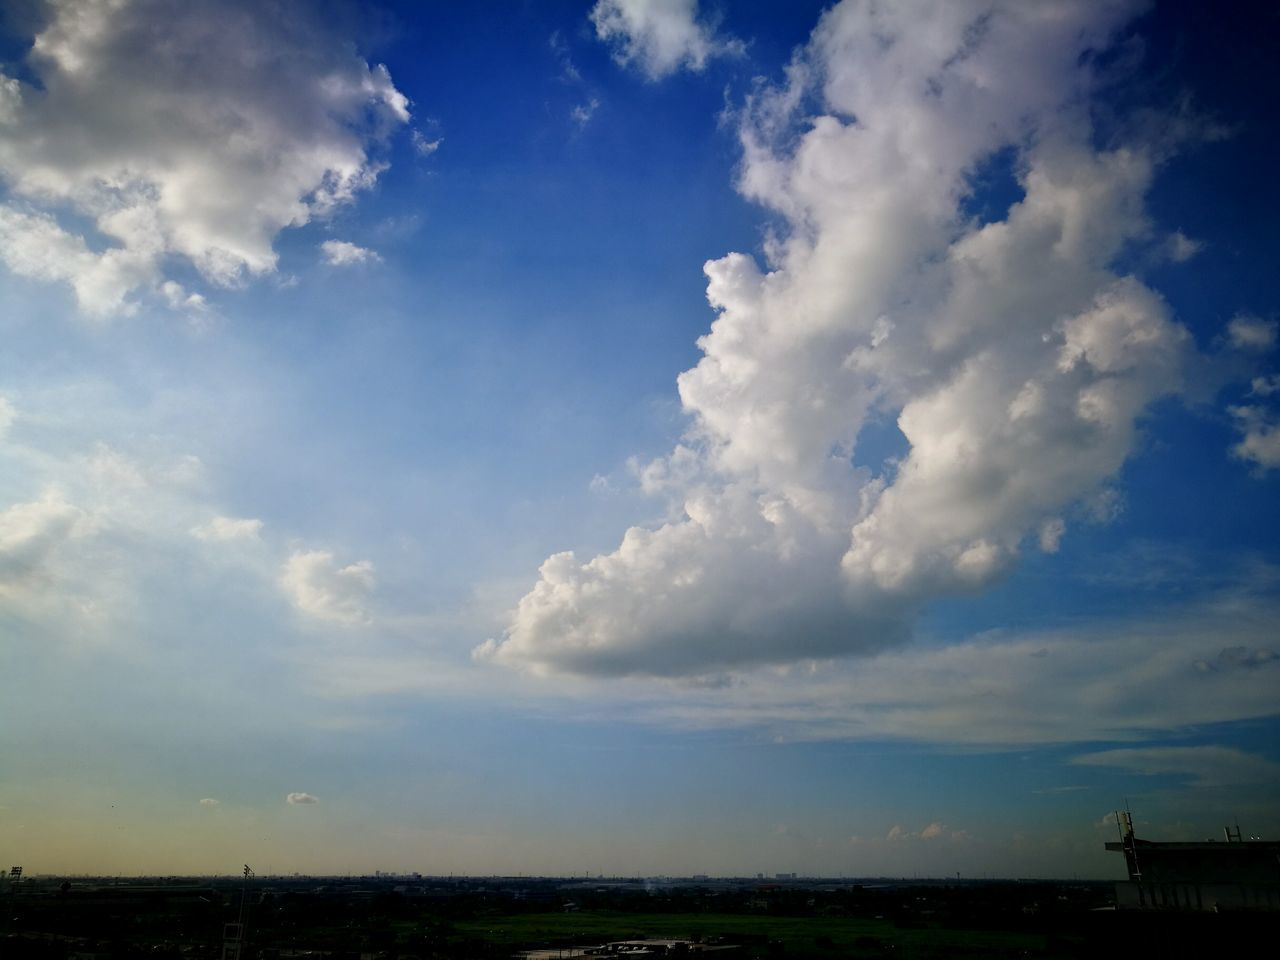 cloud - sky, sky, nature, beauty in nature, no people, outdoors, flying, day, scenics, mid-air